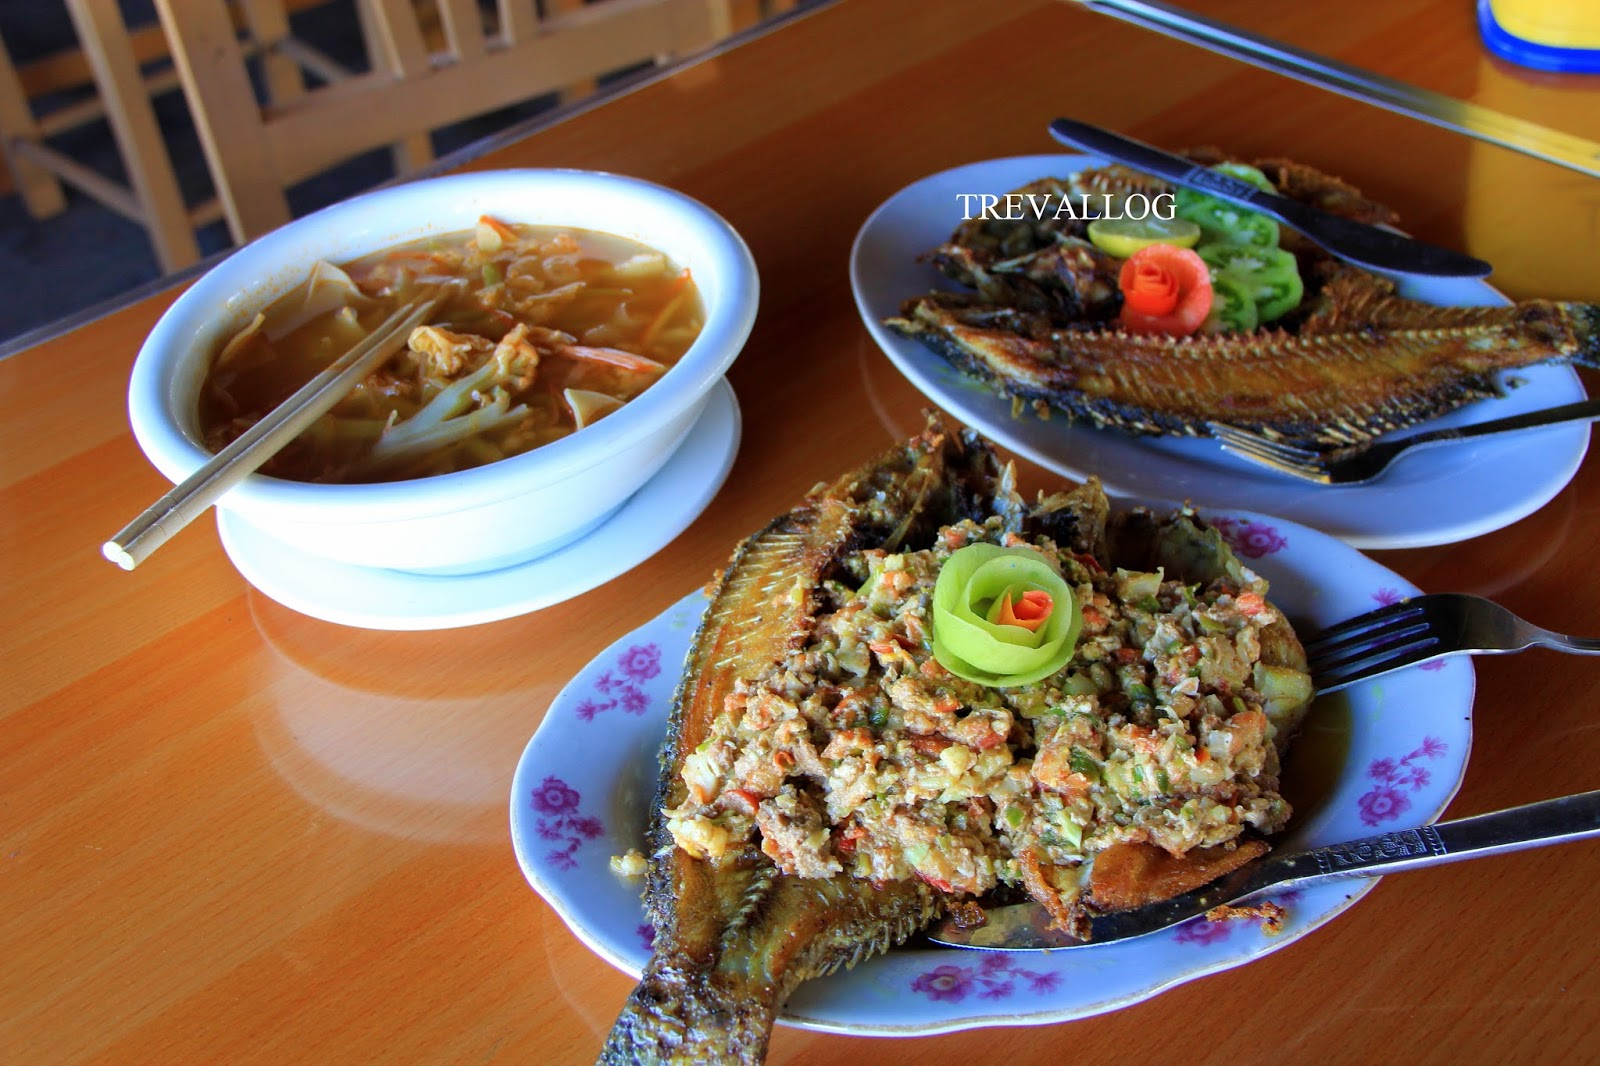 Our lunch at Nice Restaurant, Inle Lake, Myanmar